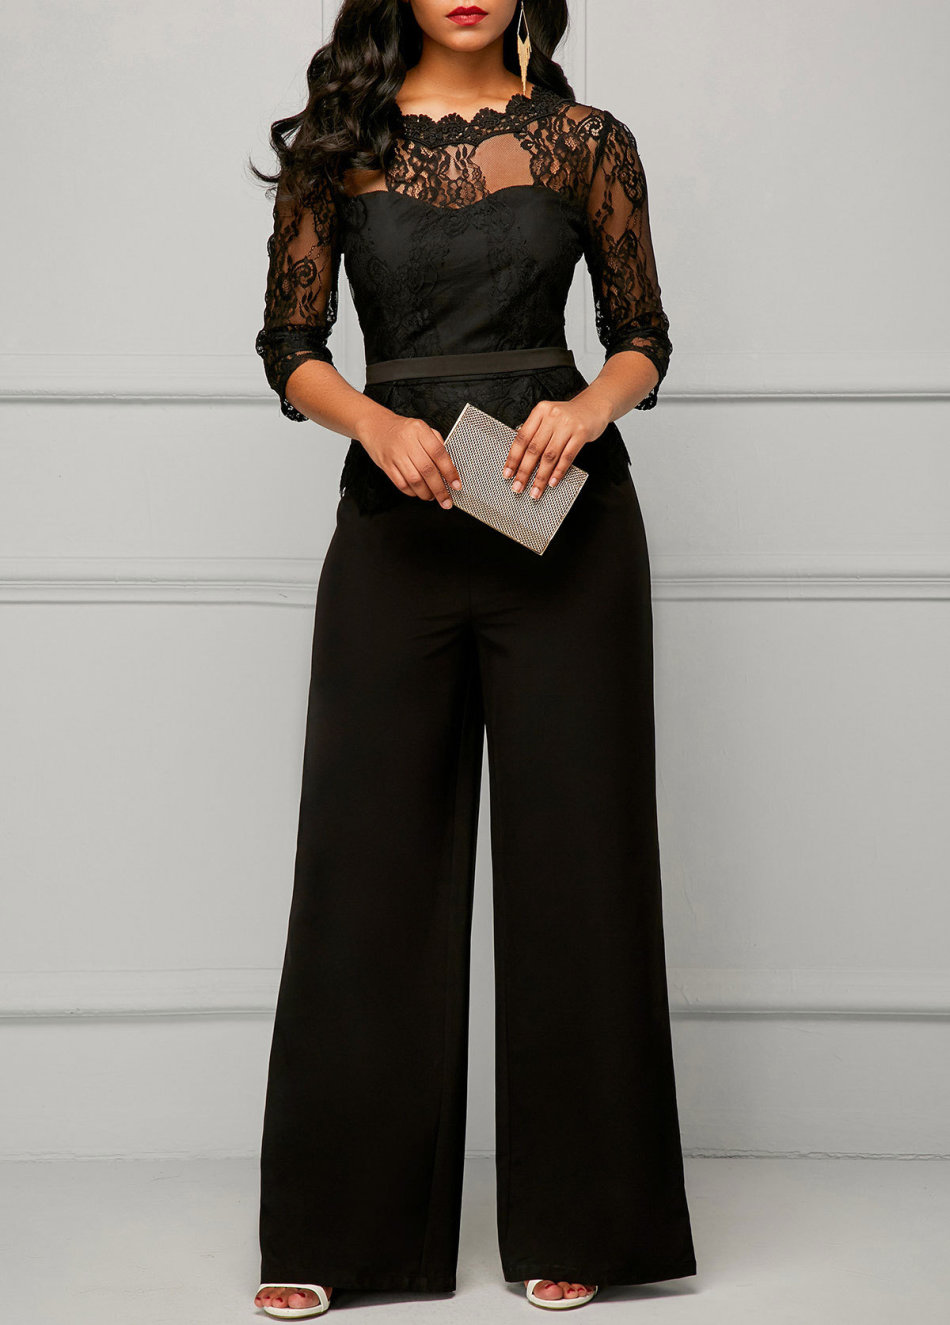 Playsuits Jumpsuits Black Lace Elegant Evening Jumpsuits Was